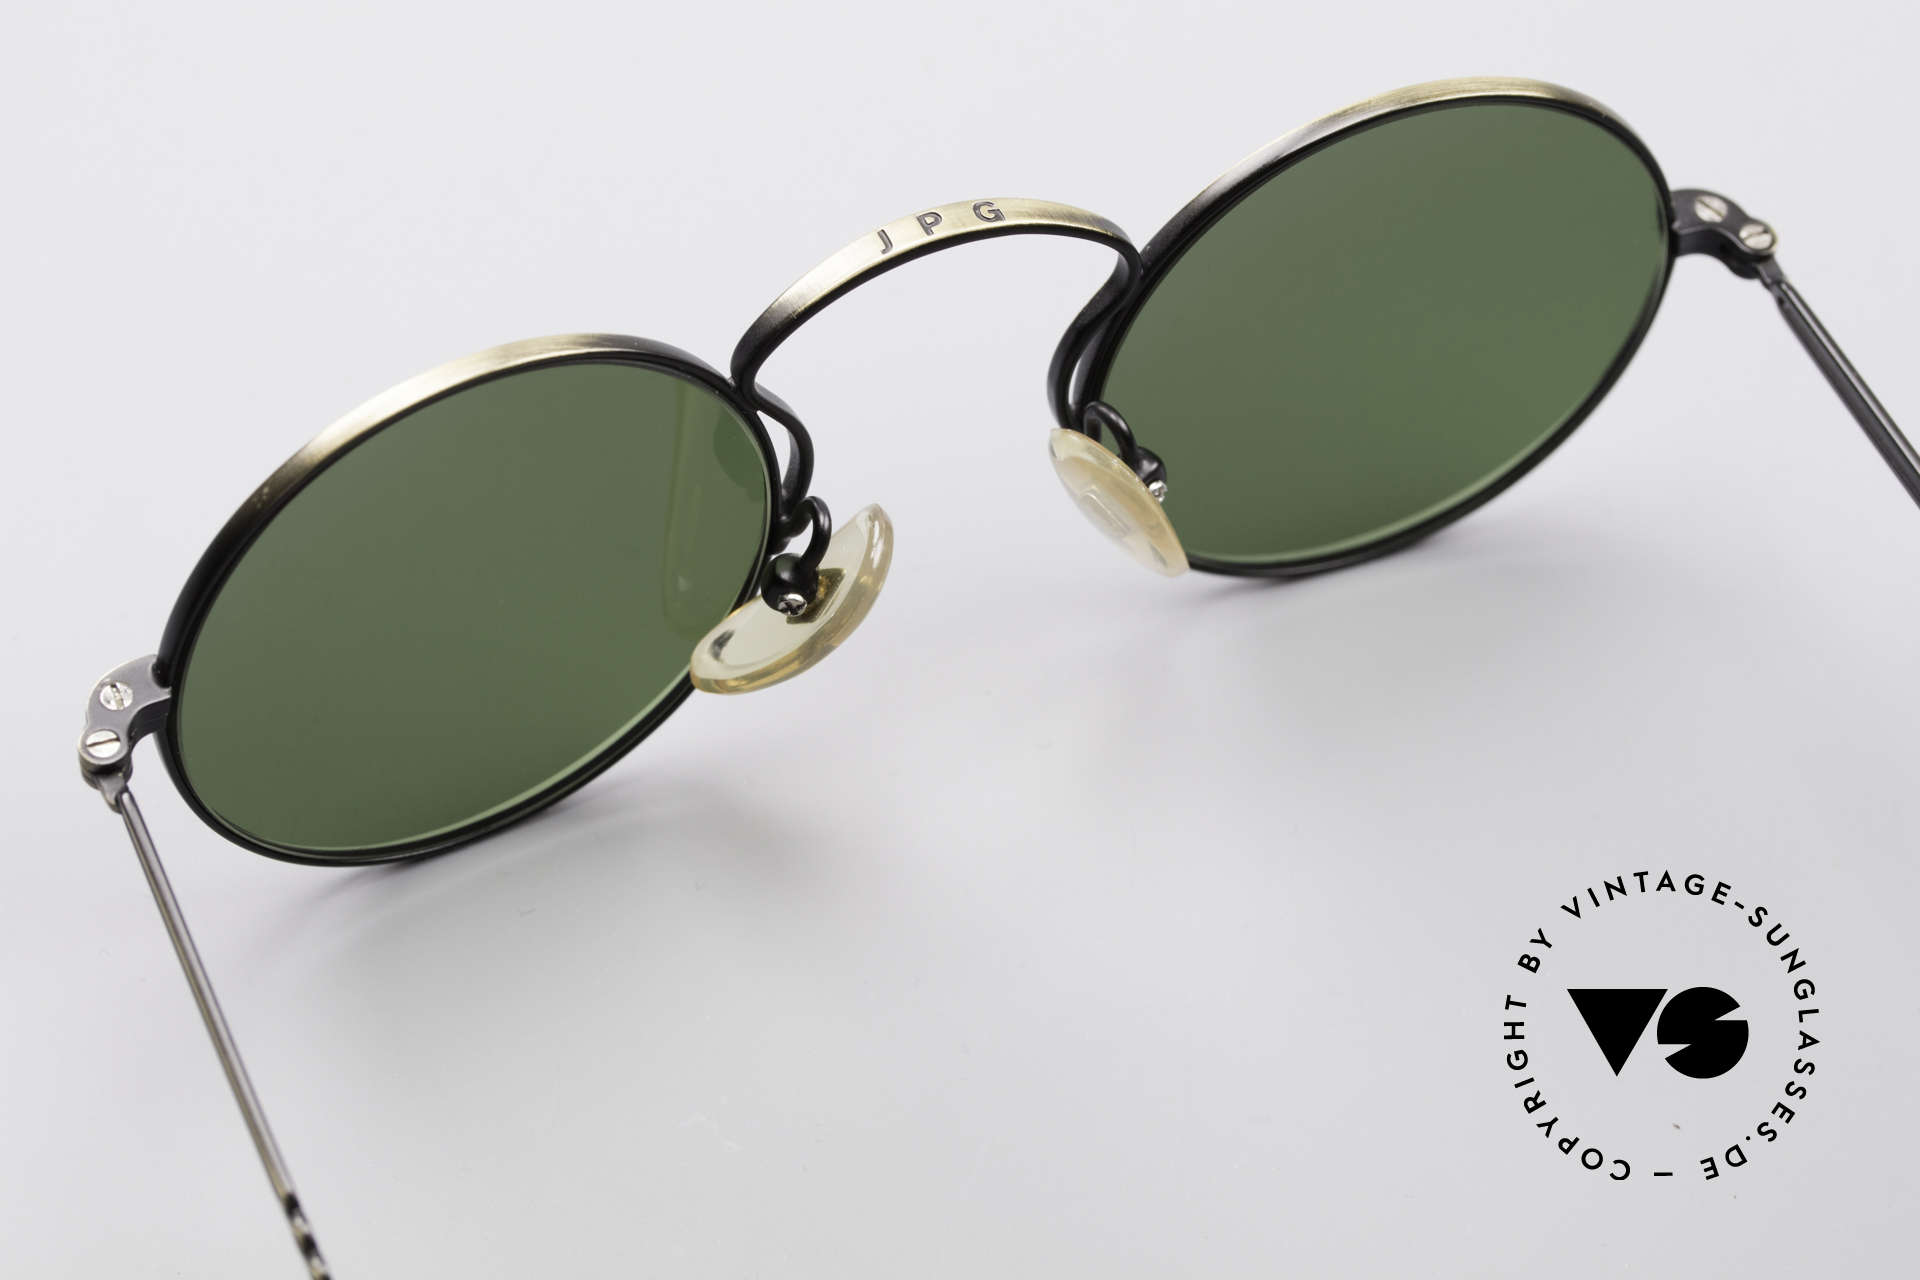 Jean Paul Gaultier 55-0172 90's Designer Sunglasses, green sun lenses can be replaced with prescriptions, Made for Men and Women